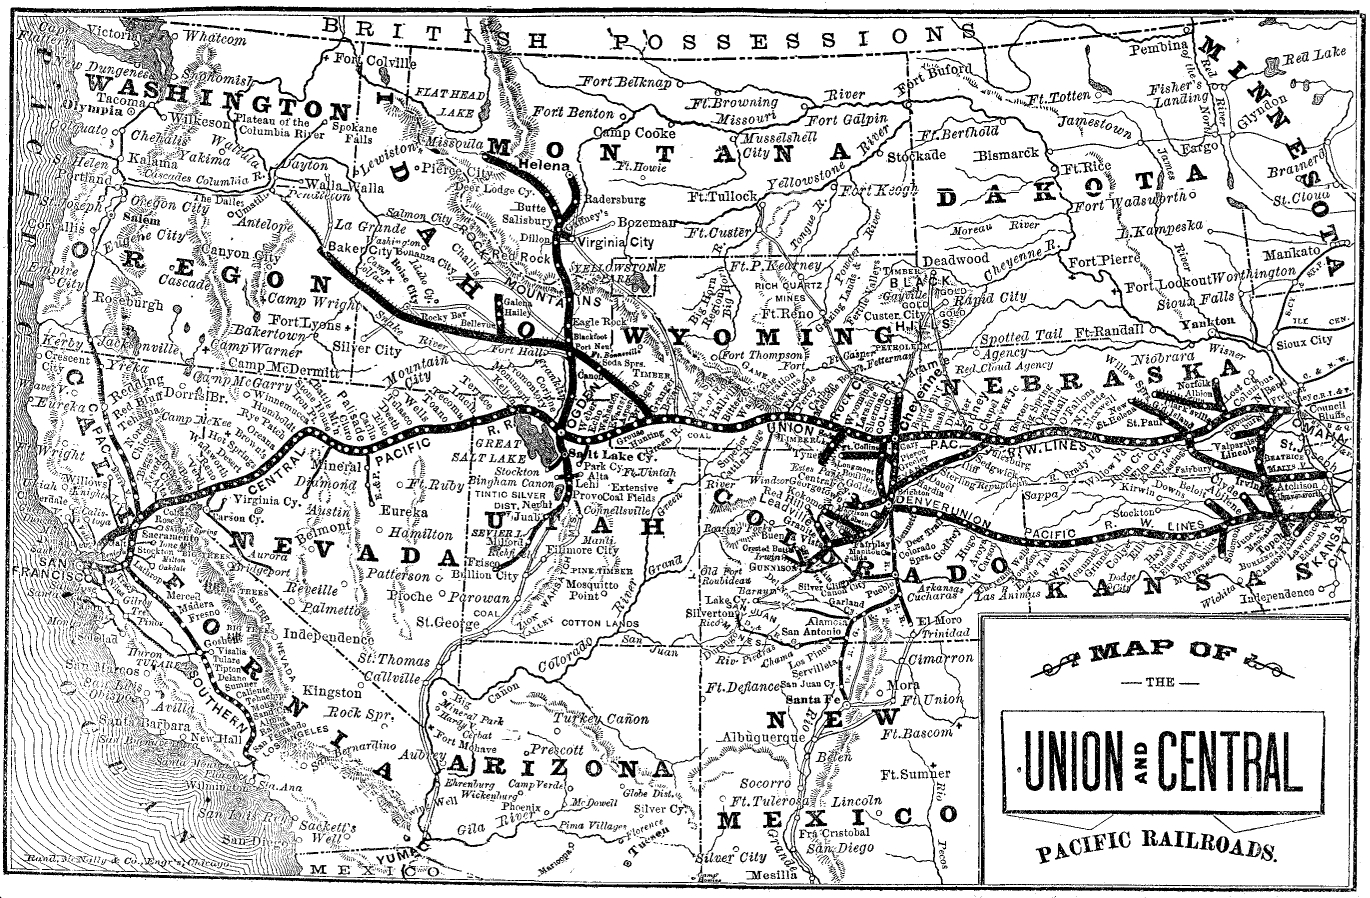 Map of the Union and Central Pacific Railroads (1890s).